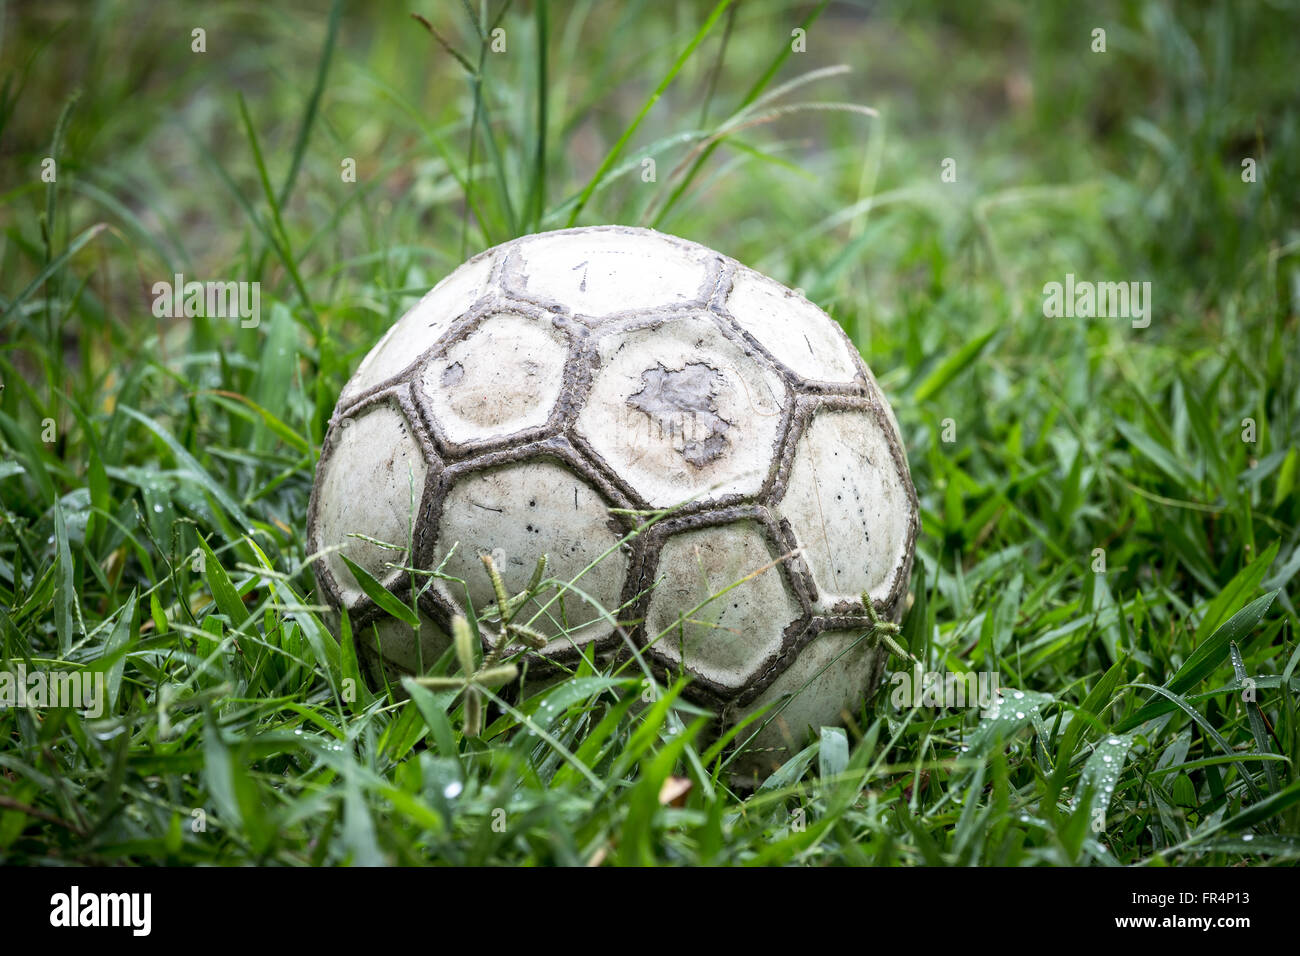 Old soccer ball in the grass on a rainy day. - Stock Image